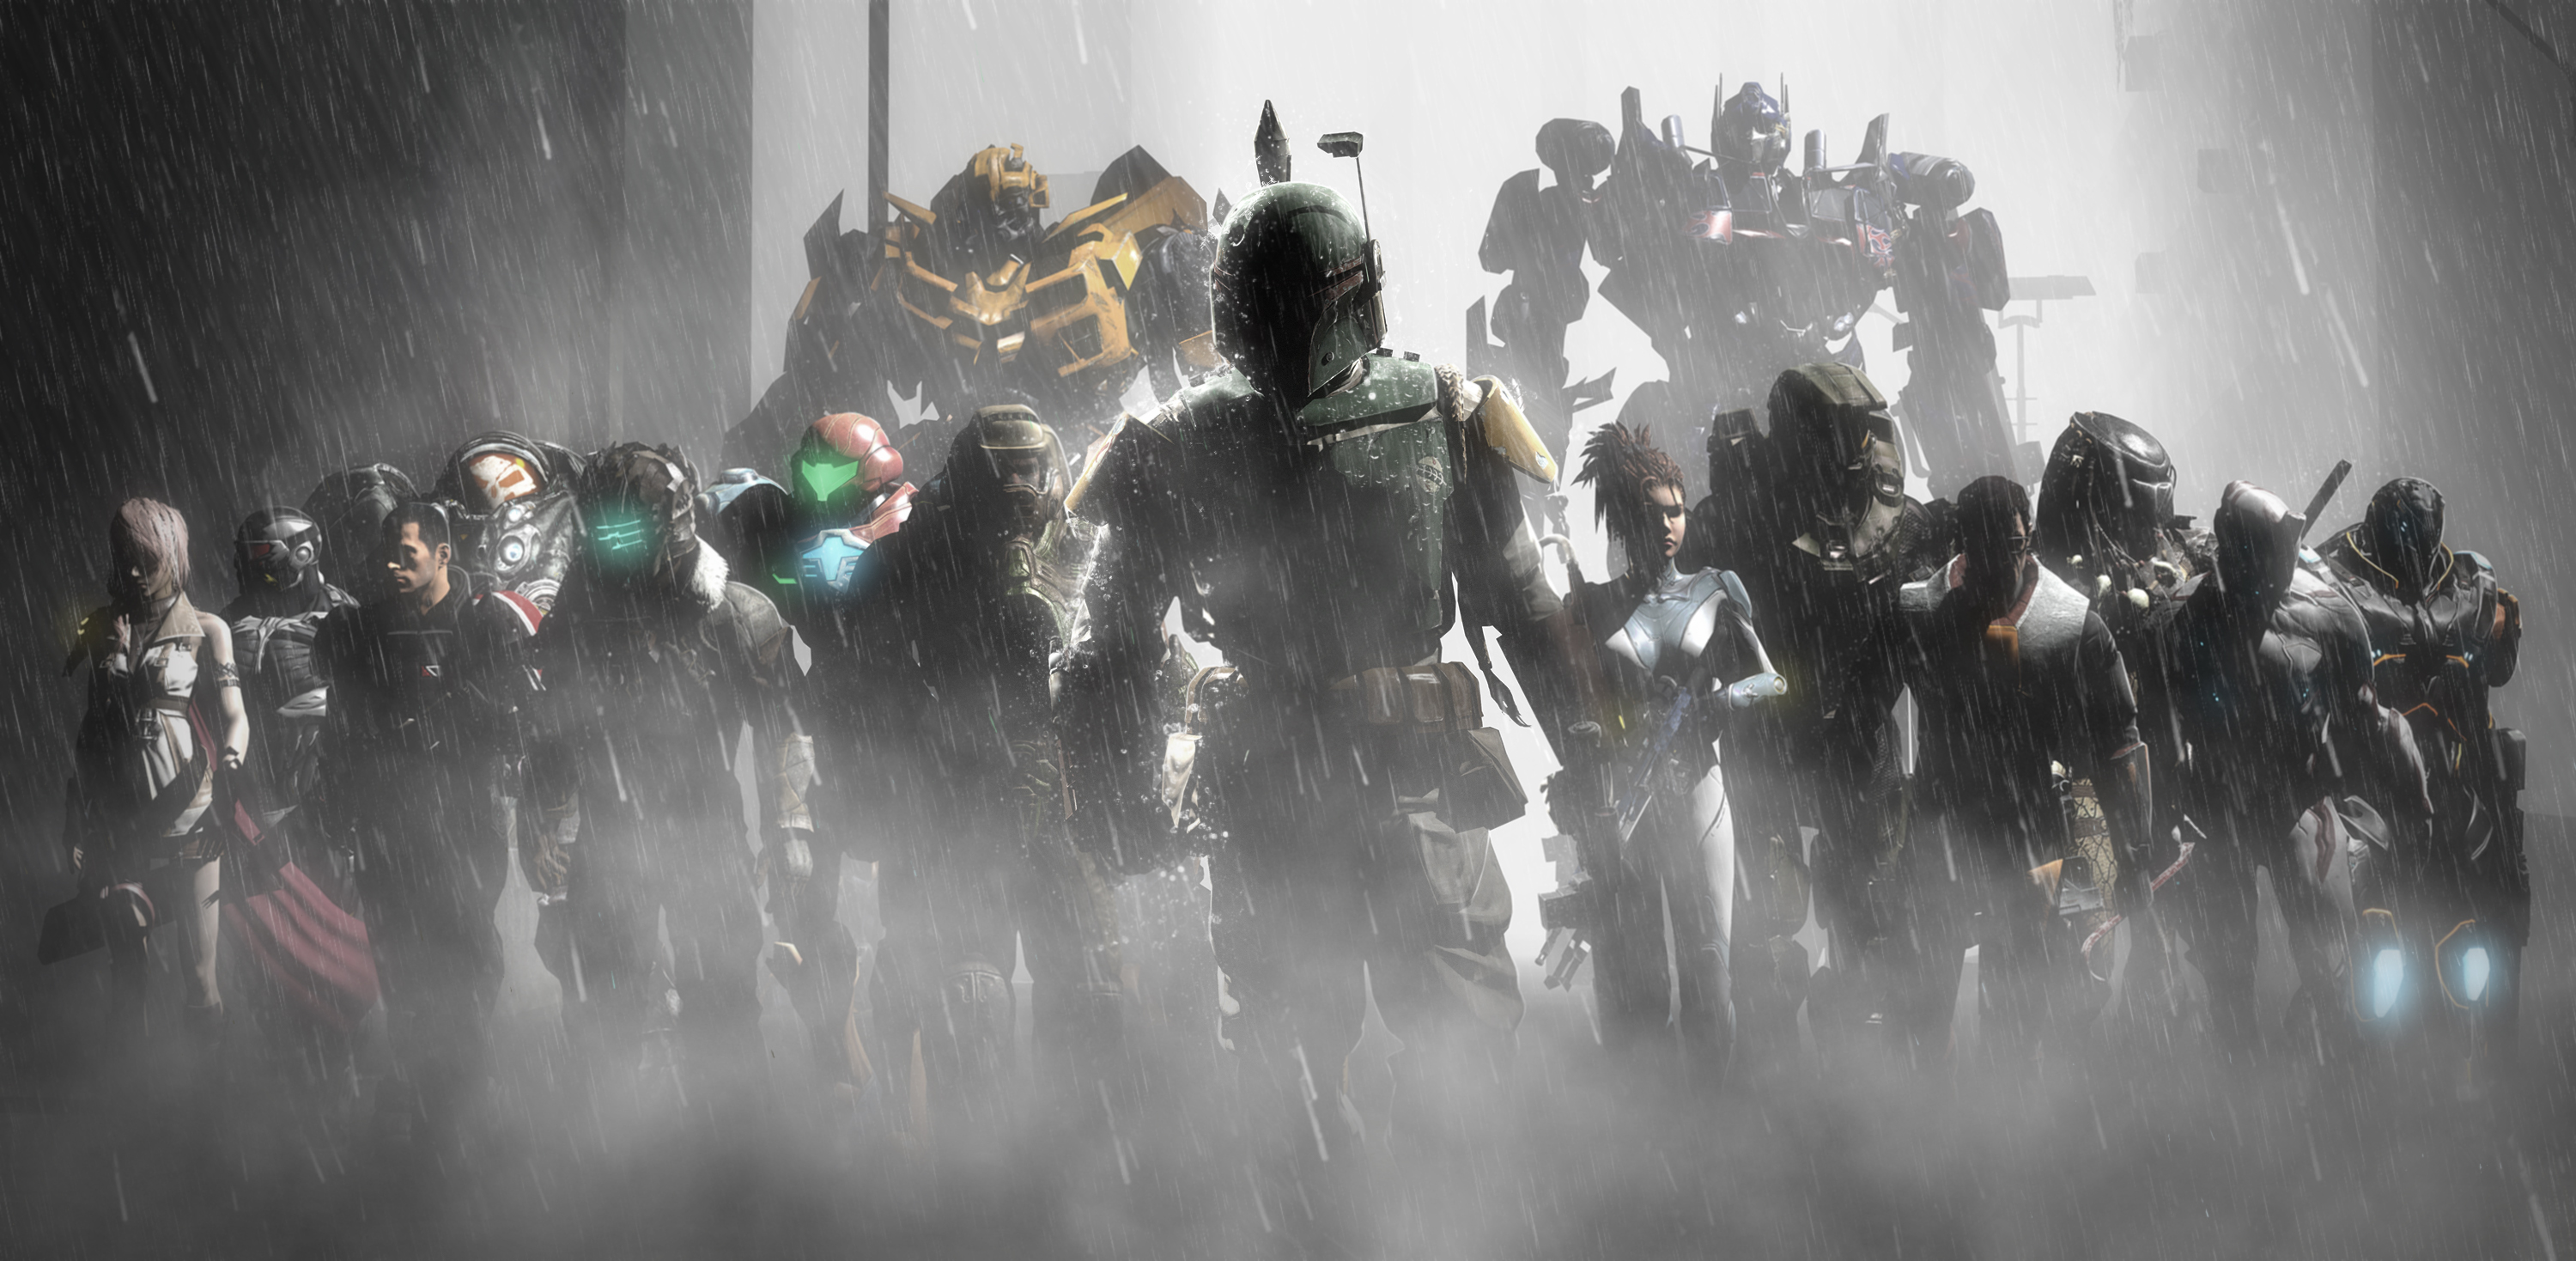 Halo Dead Space Crysis Mass Effect Video Games Boba Fett 3000x1468